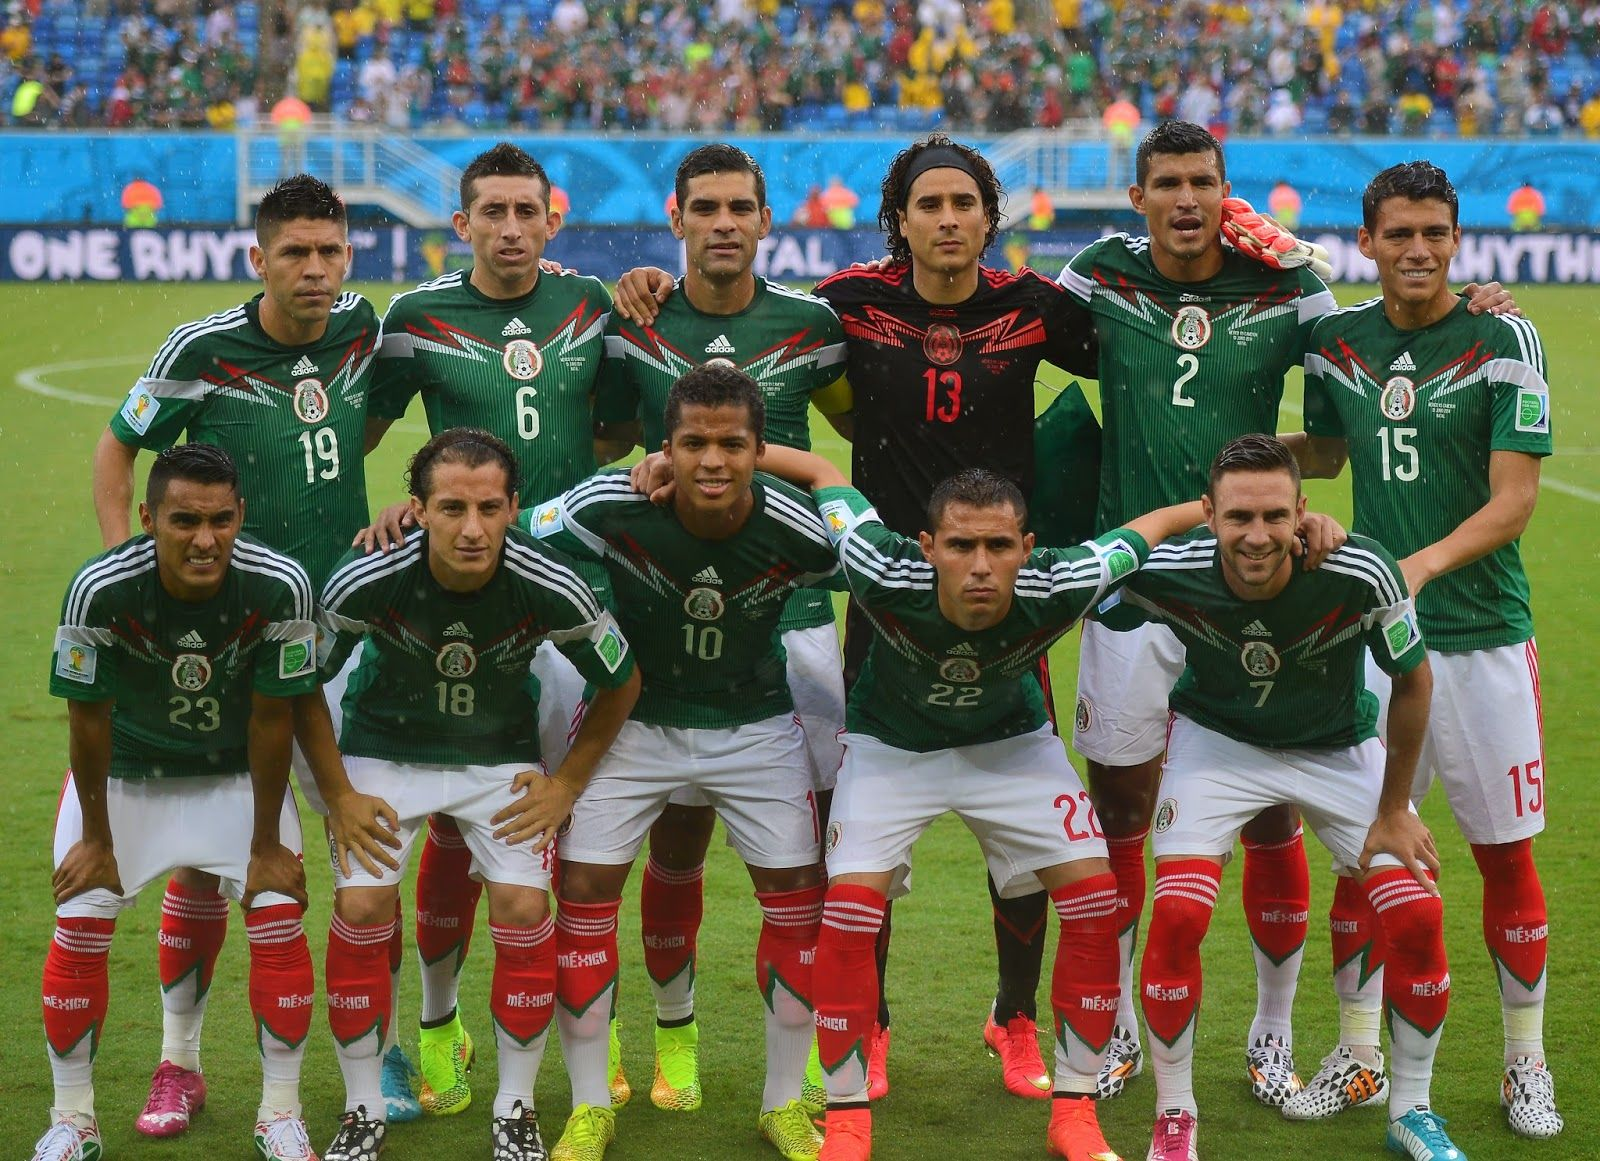 Fifa World Cup 2014 Mexico Vs Cameroon Second Match In Pictures Mexico World Cup World Cup 2014 Soccer World